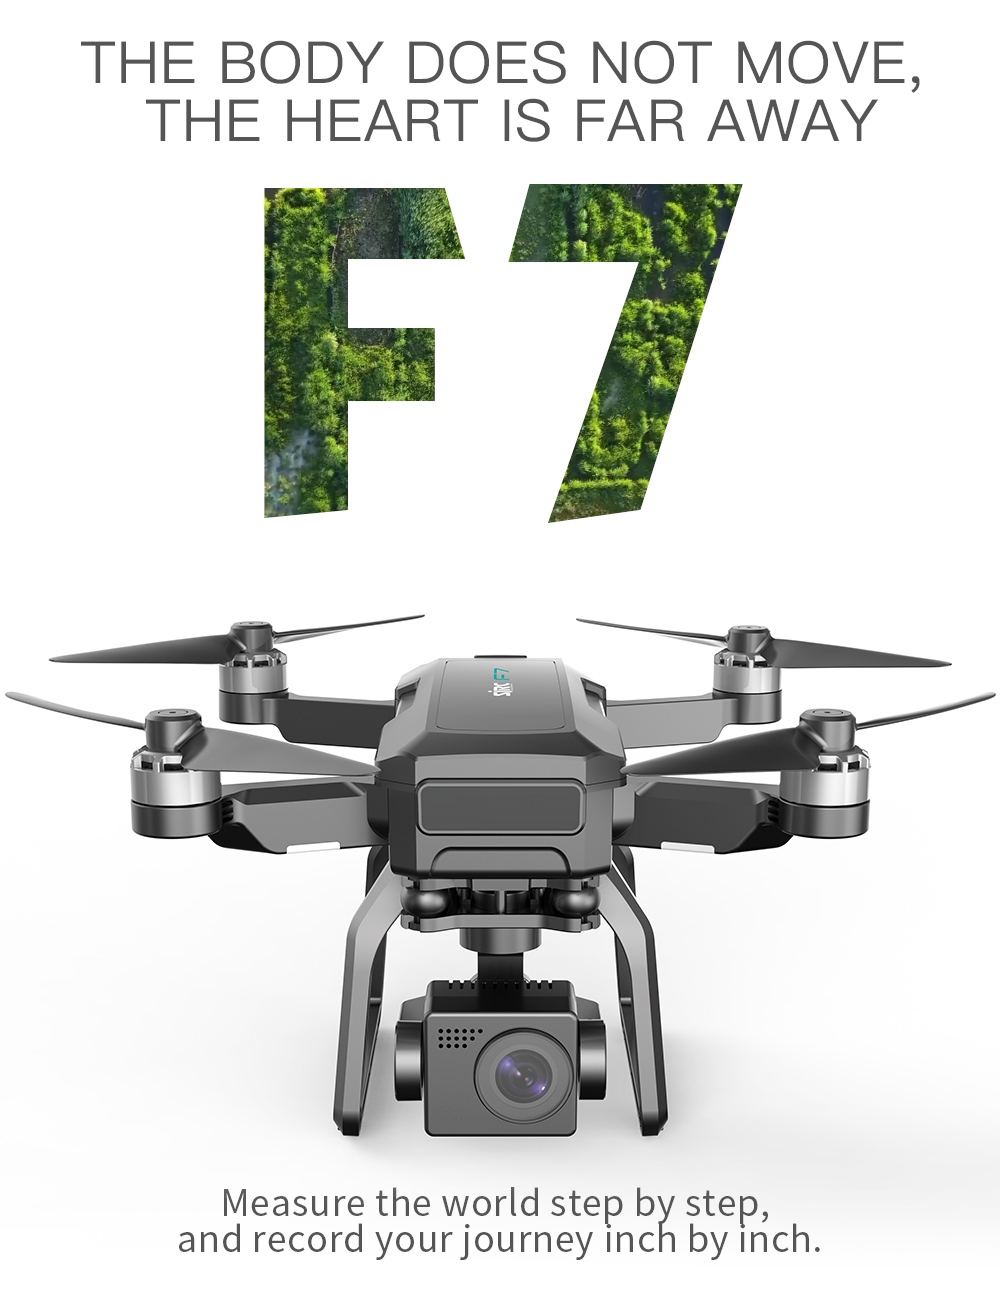 SJRC F7 4K Pro GPS 5G WIFI 3KM FPV 3-Axis Mechanical Gimbal Optical Flow Brushless Drone - One Battery with Bag